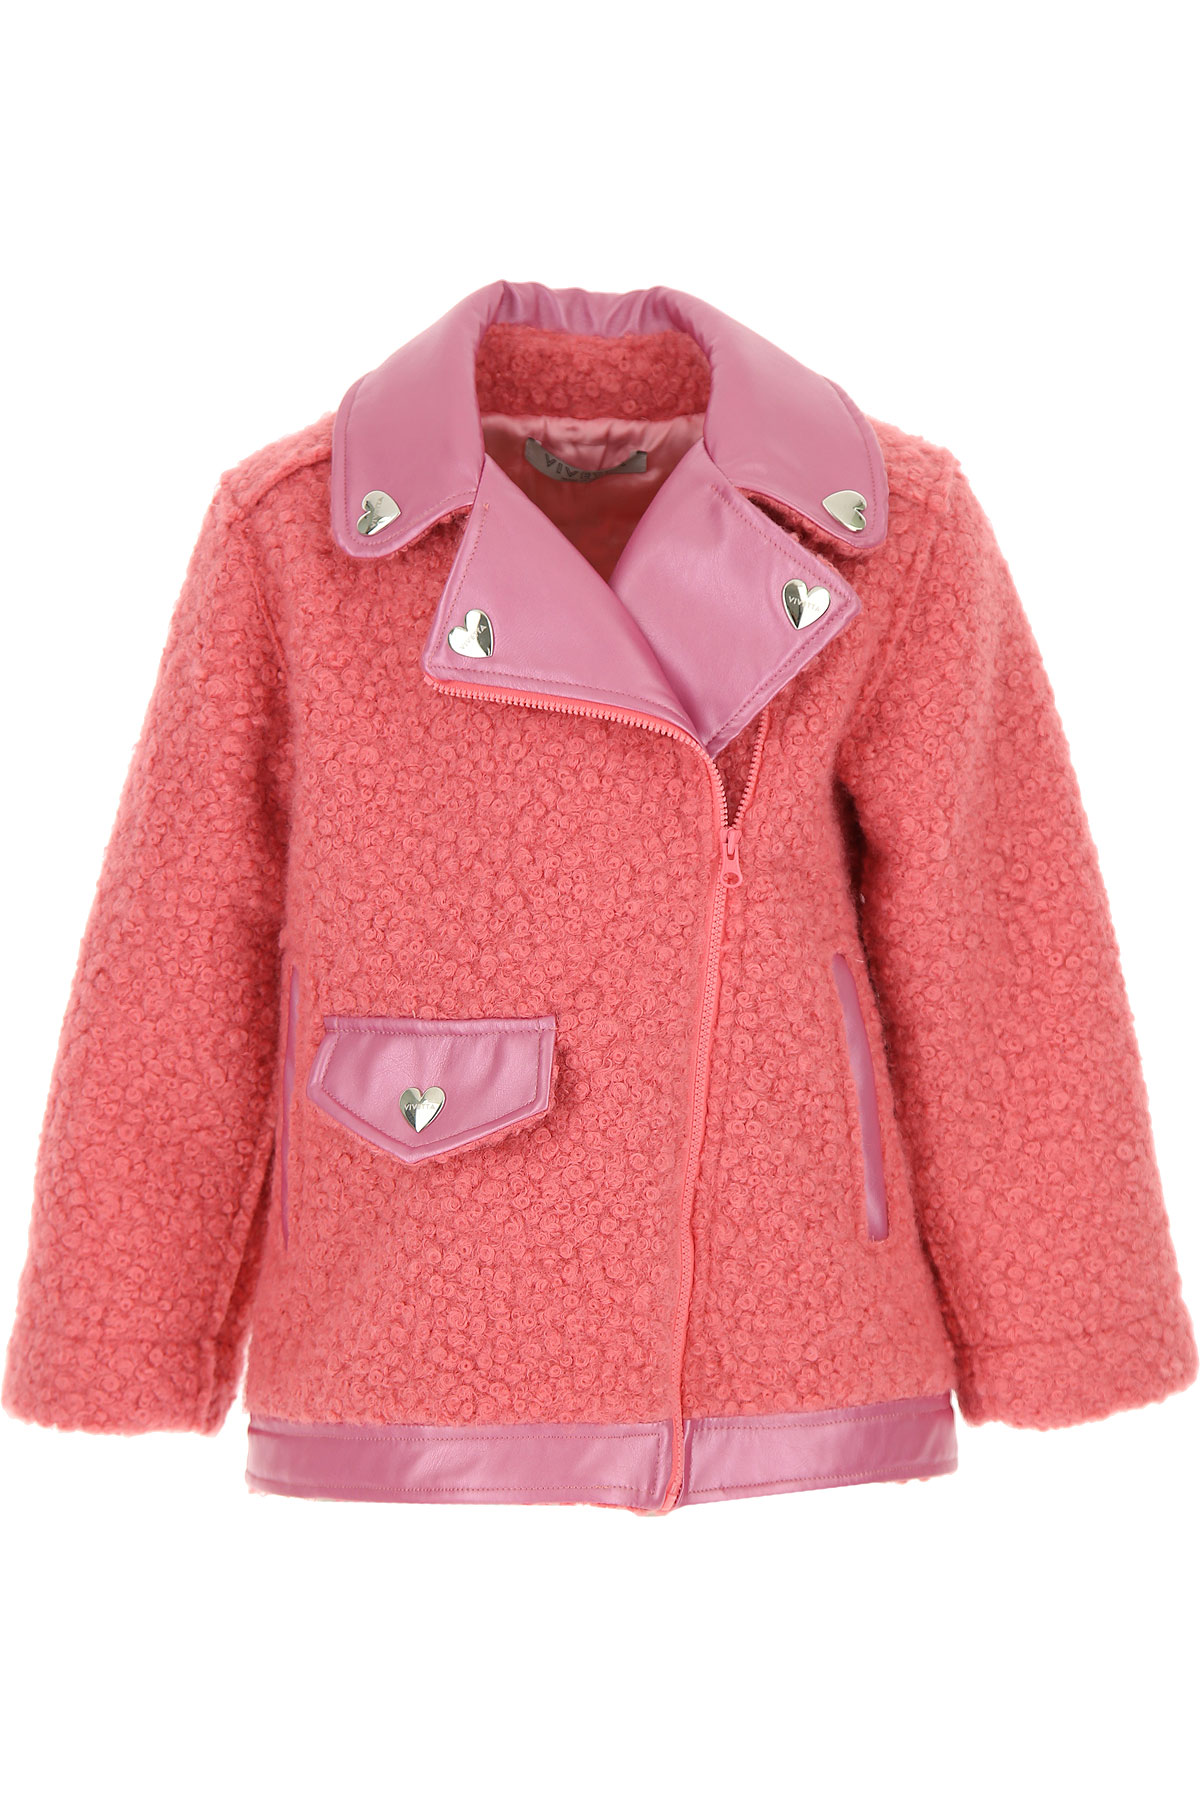 Vivetta Kids Jacket for Girls On Sale, Pink, polyester, 2019, 2Y 6Y 8Y